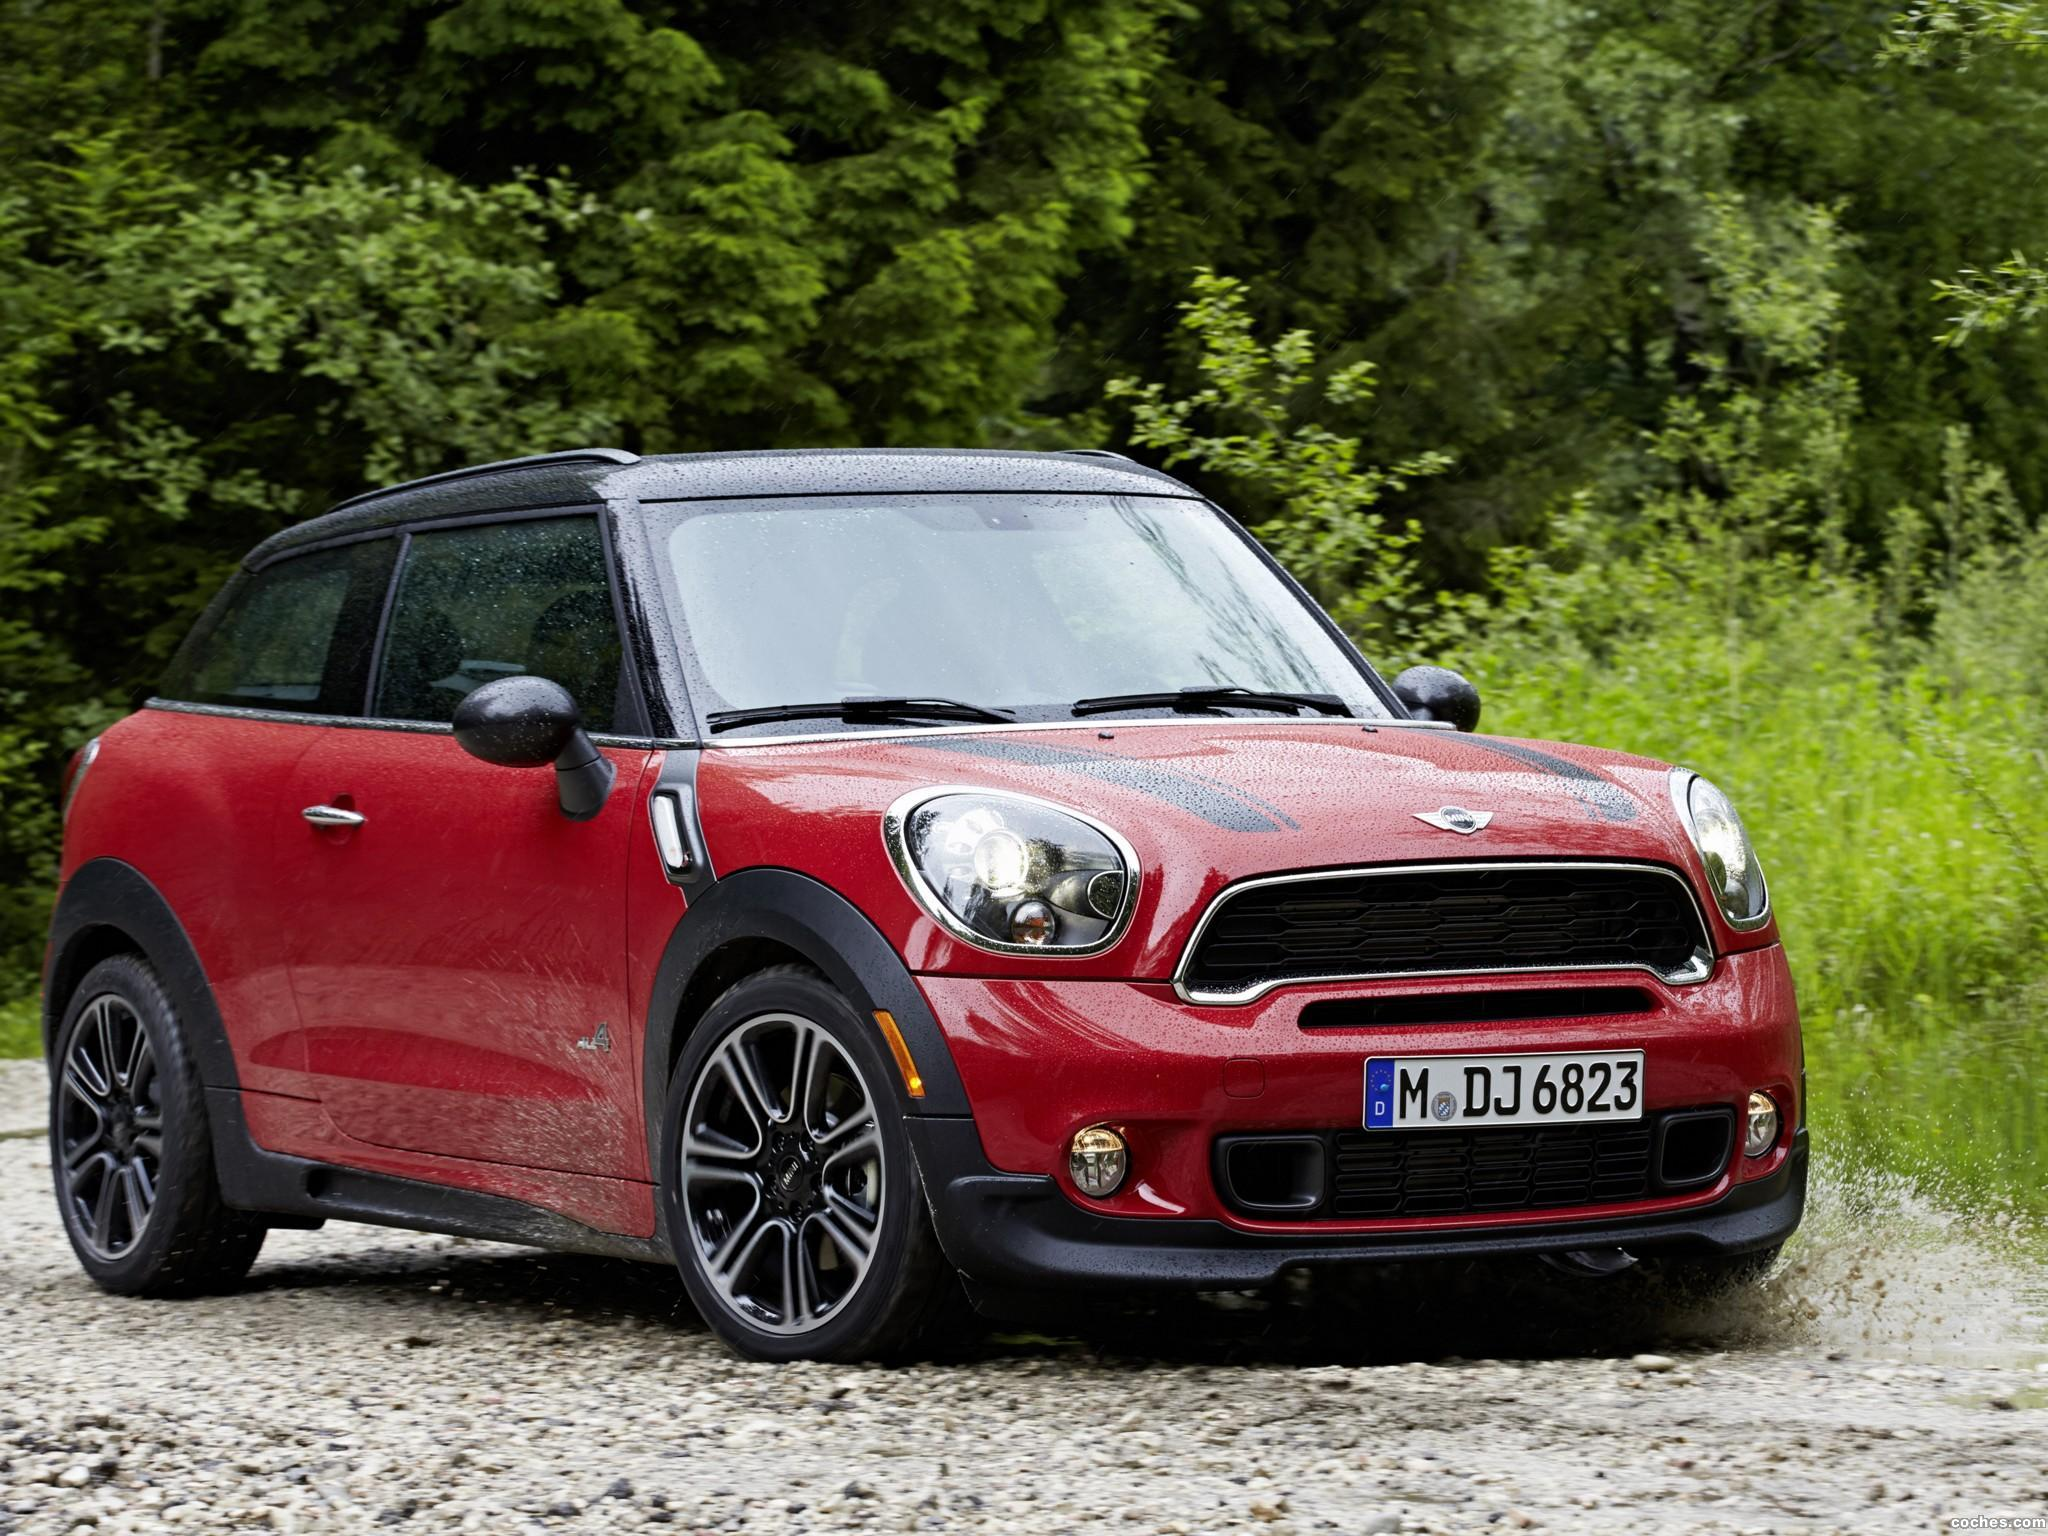 mini_cooper-s-paceman-all4-john-cooper-works-package-r61-2013_r27